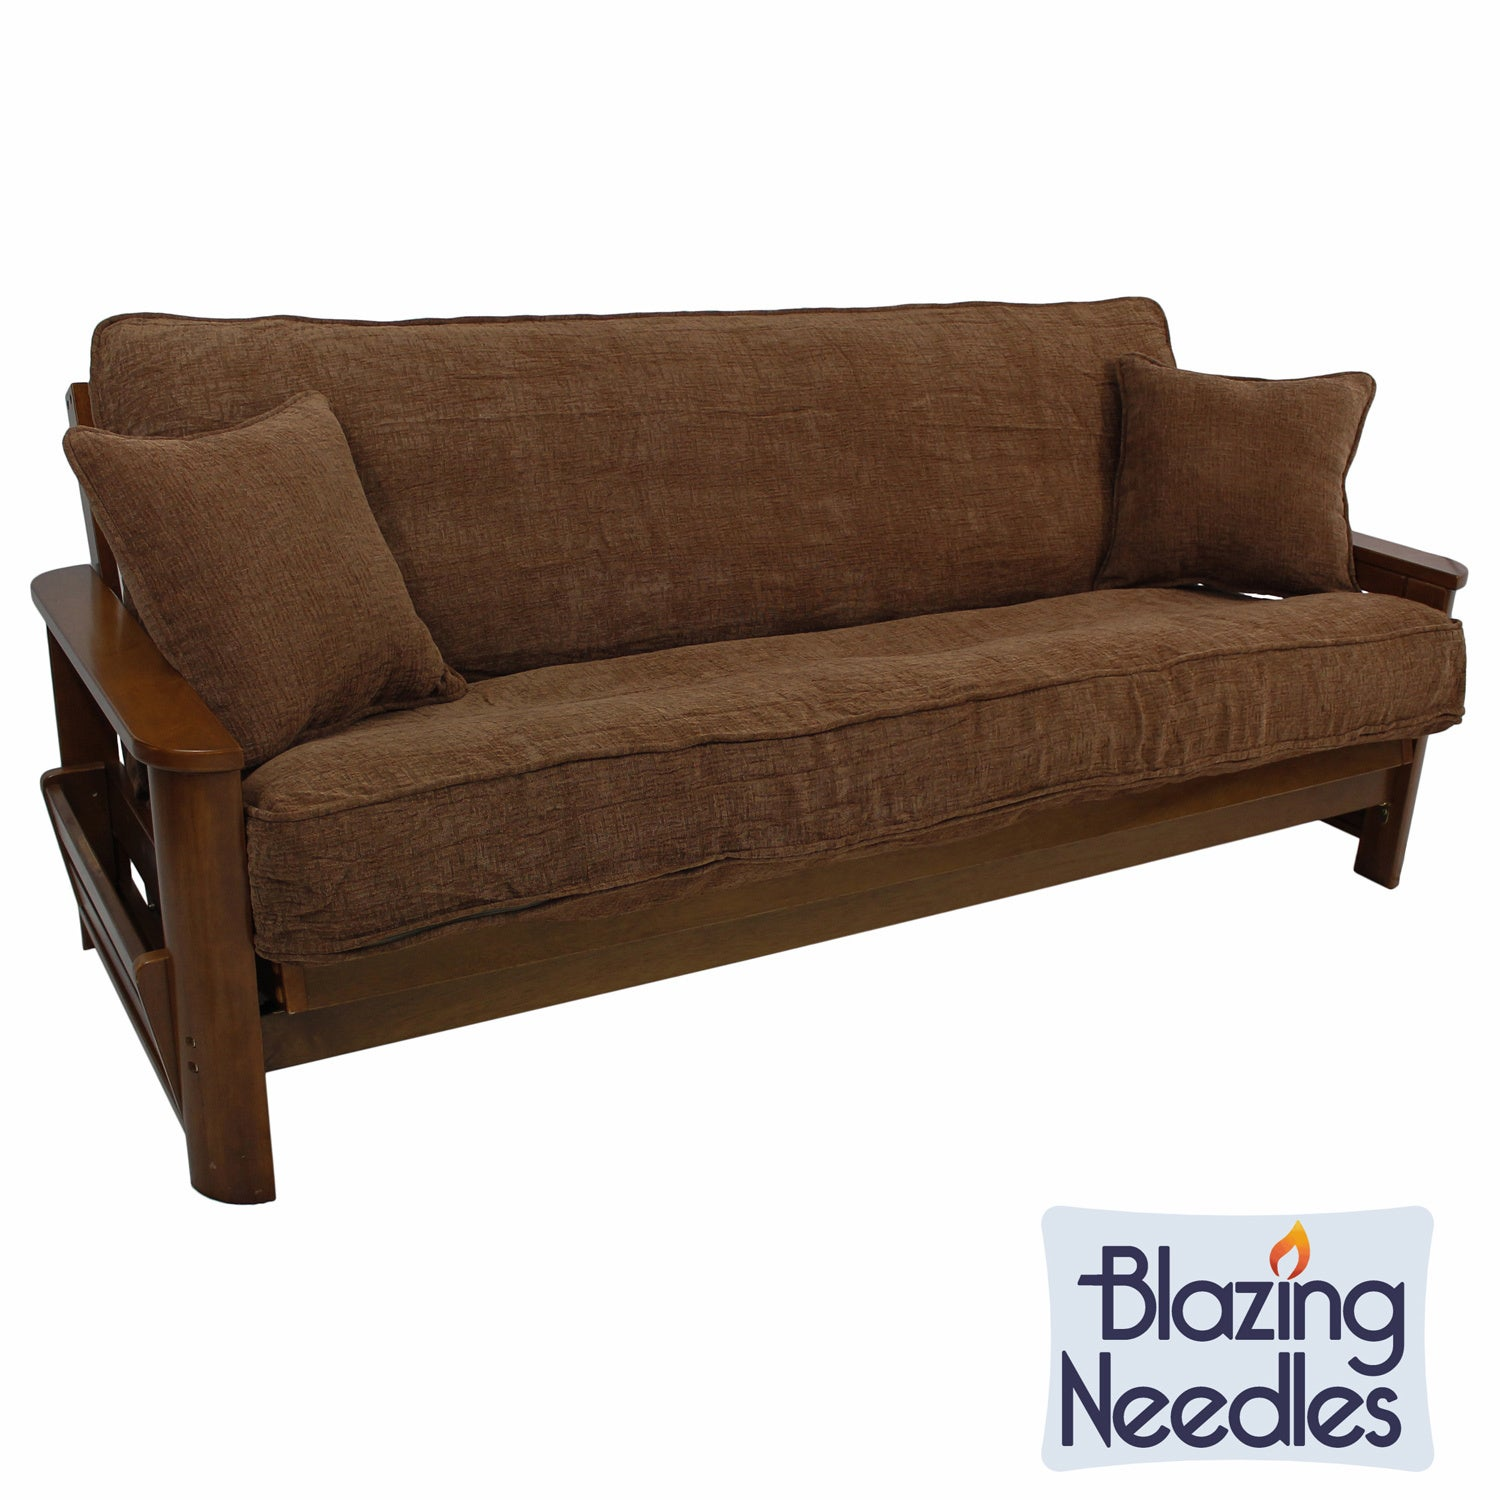 Blazing Needles Solid Chenille Double-corded Futon Cover ...